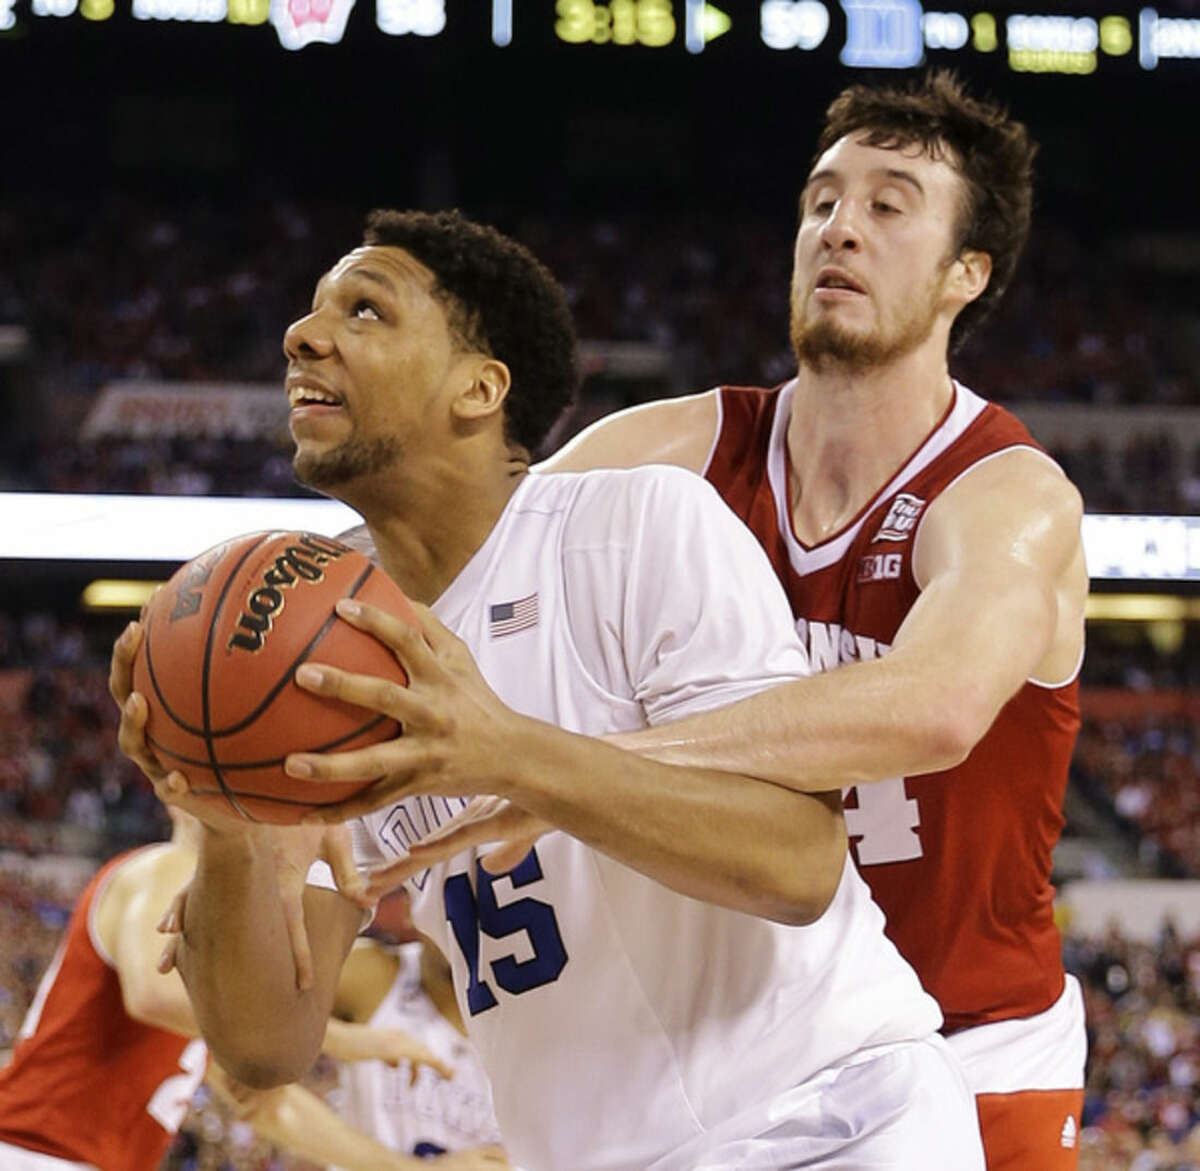 Duke's Jahlil Okafor (15) is fouled by Wisconsin's Frank Kaminsky (44) during the second half of the NCAA Final Four college basketball tournament championship game Monday, April 6, 2015, in Indianapolis. (AP Photo/David J. Phillip)